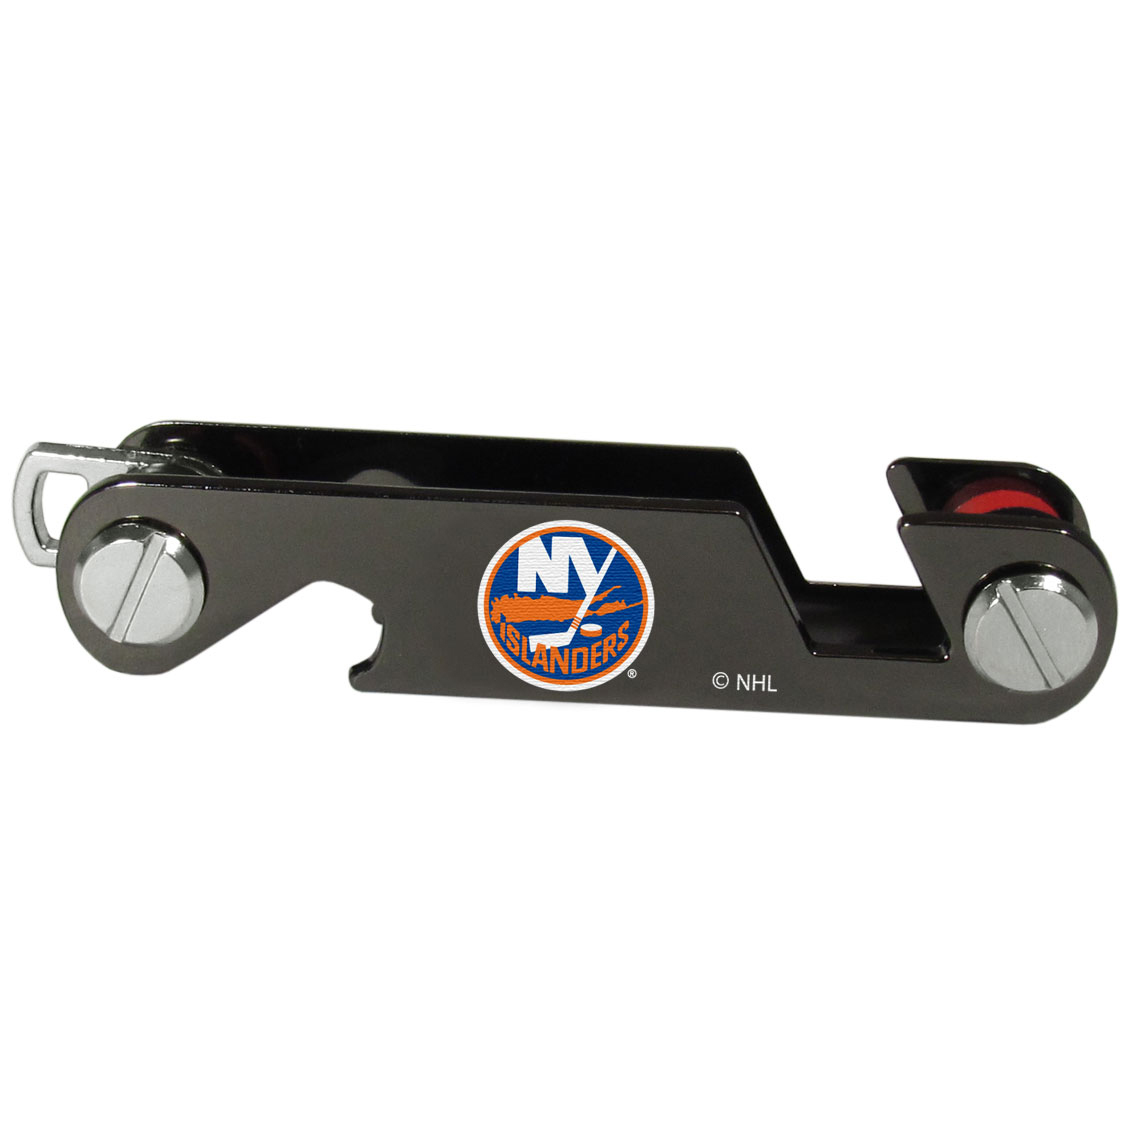 New York Islanders® Key Organizer - This innovative key organizer stores your keys in a compact, easy to access bundle with Swiss style engineering. With the New York Islanders® key organizer you can load up to 10 keys that zipper back into the organizer so that you never have to deal with keys poking you in your pocket, damaging your purse or simply creating a ton of noise. There is a handy loop piece to attach your larger car key or fob.